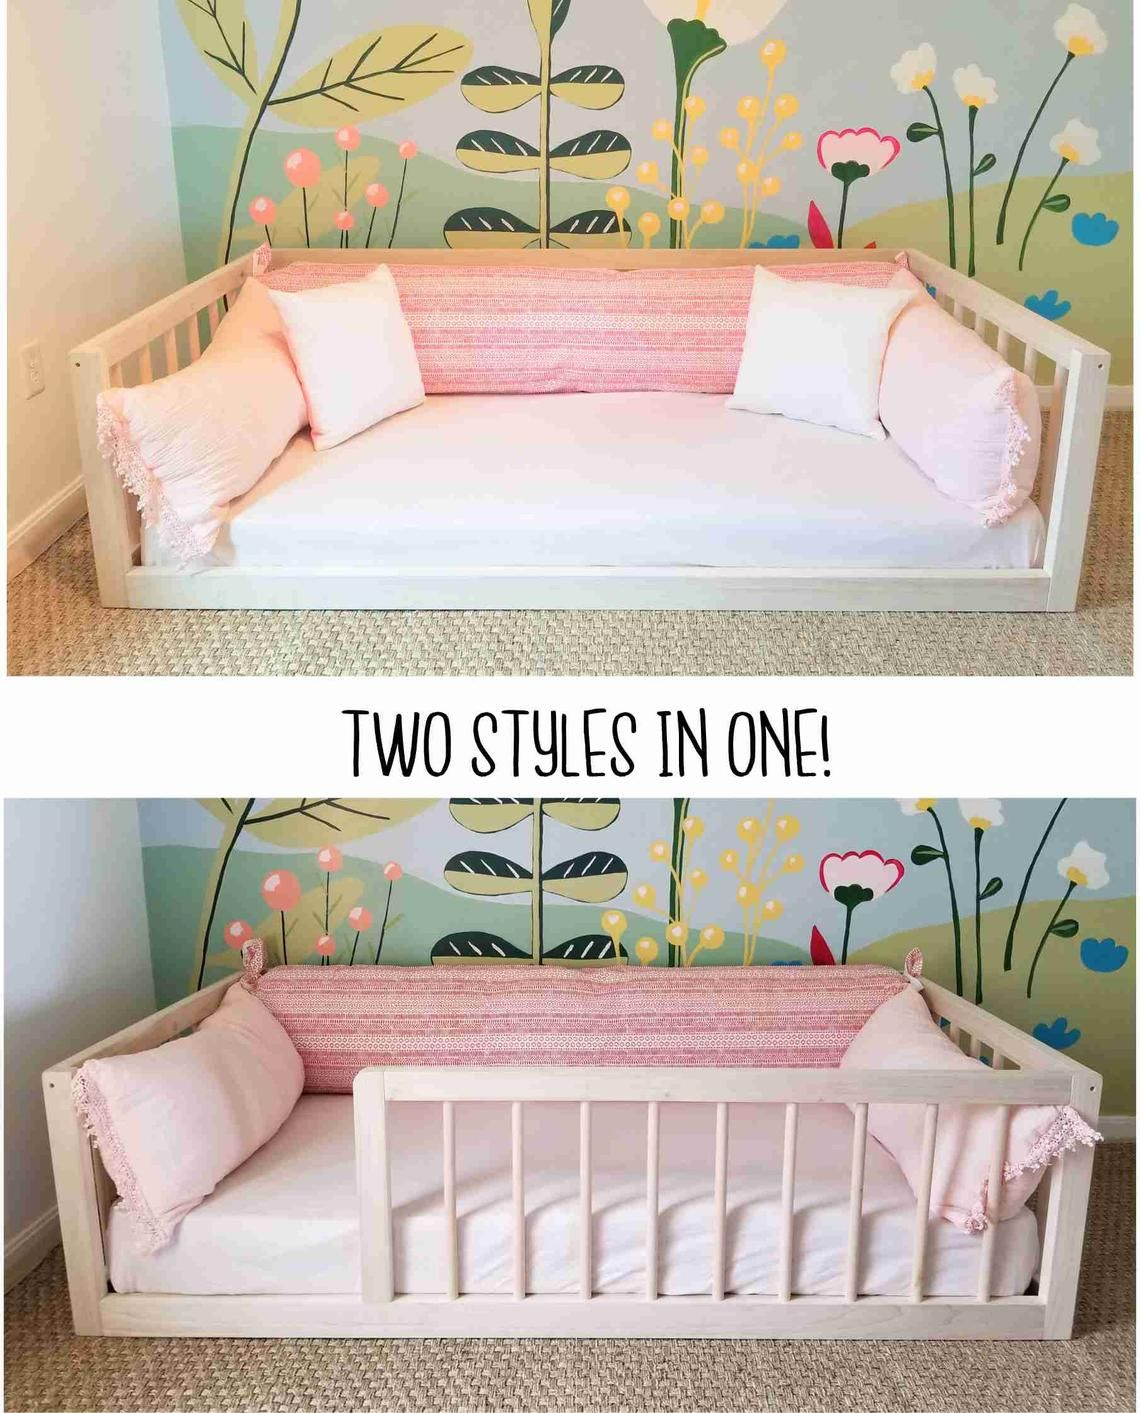 Montessori Floor Bed With Rails Full Or Double Size Floor - Boden Für Kinderzimmer